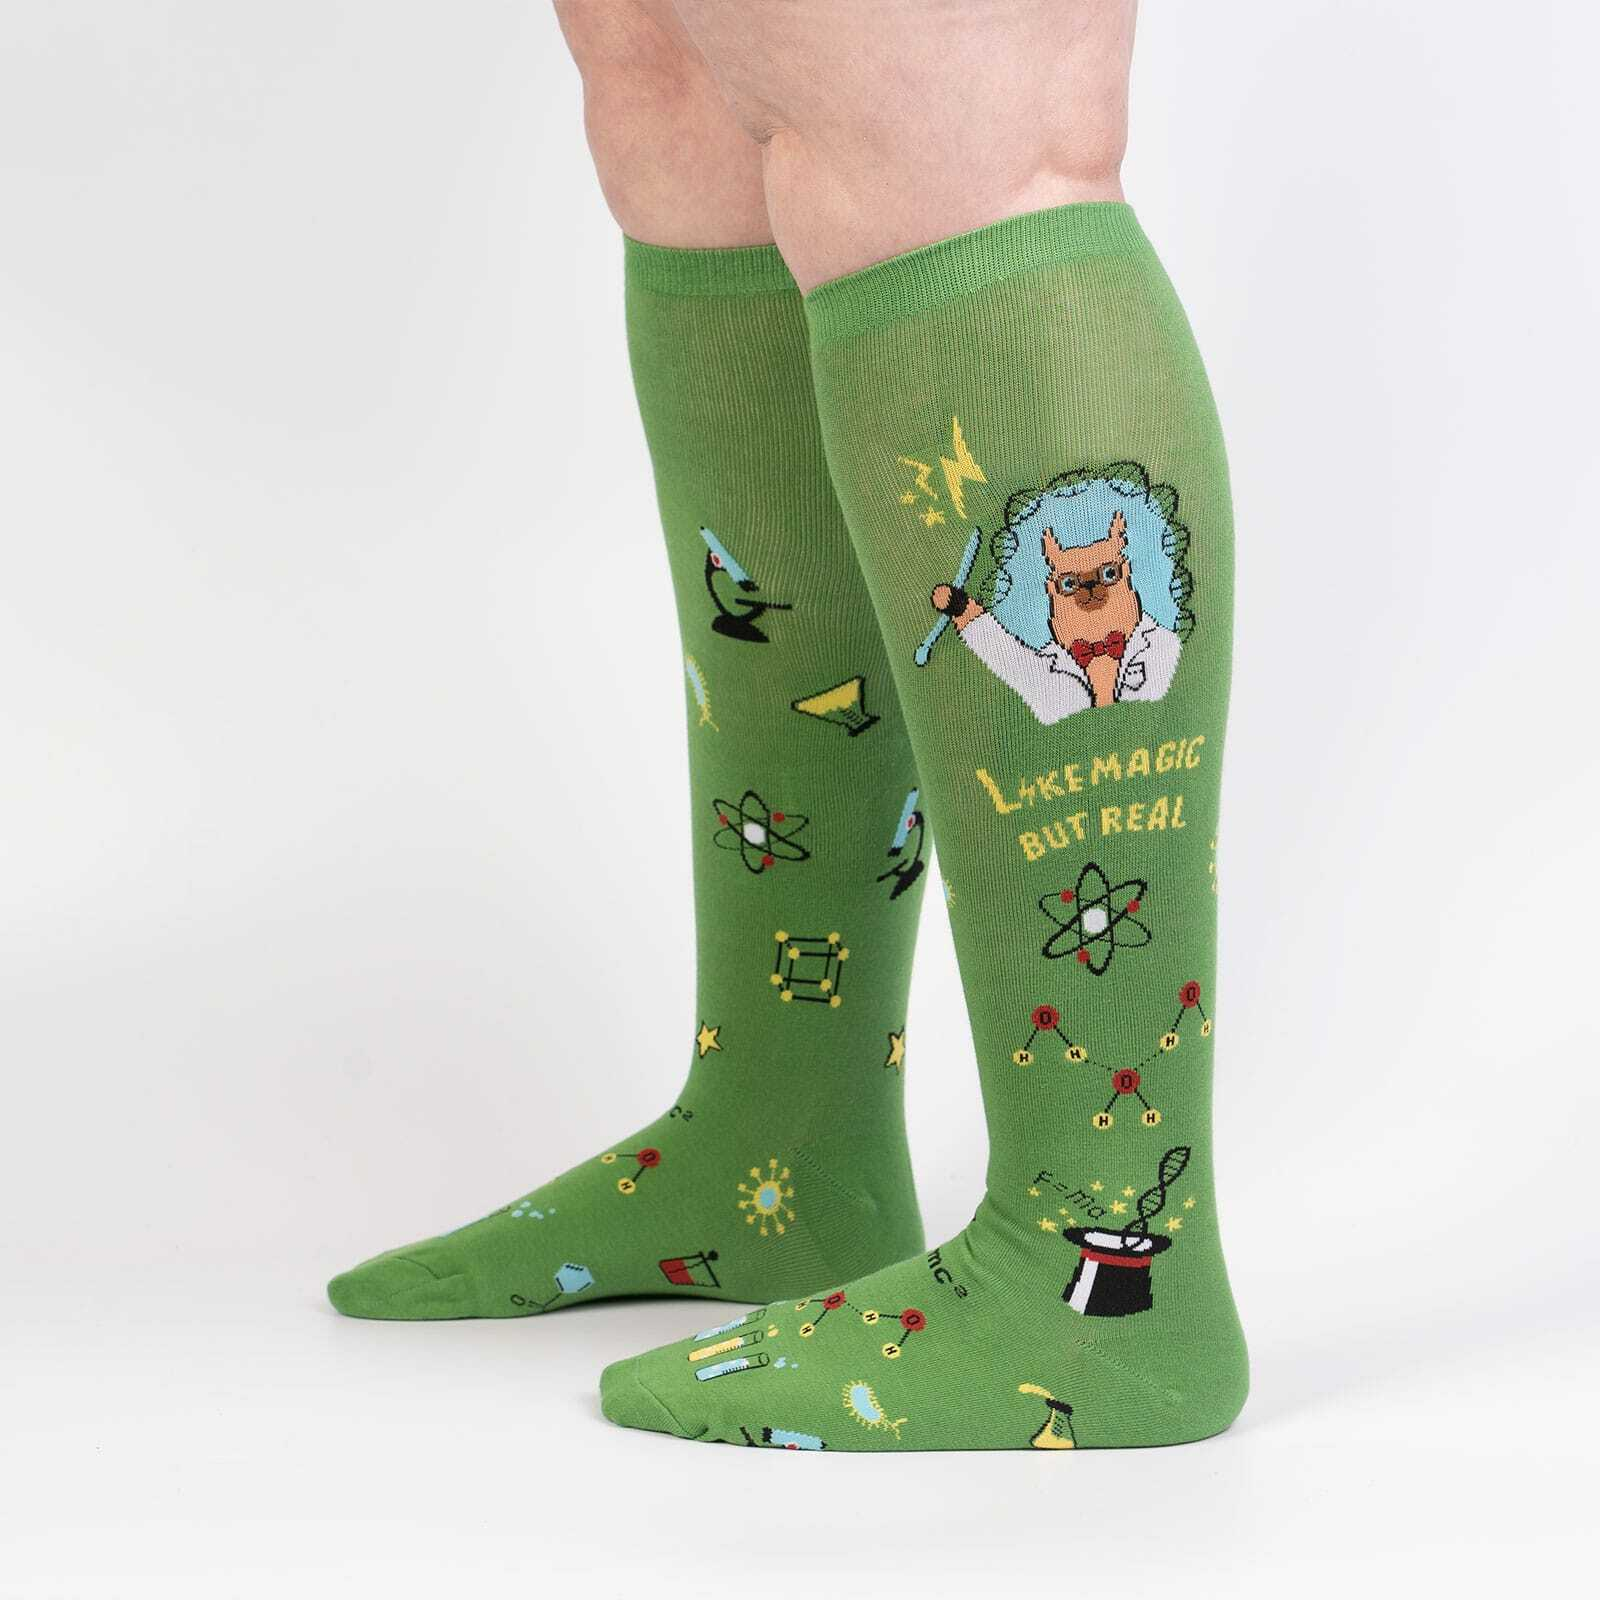 Trust Me, Llama Scientist - Funny LLama Science Wide Calf Socks Green - Unisex in Green